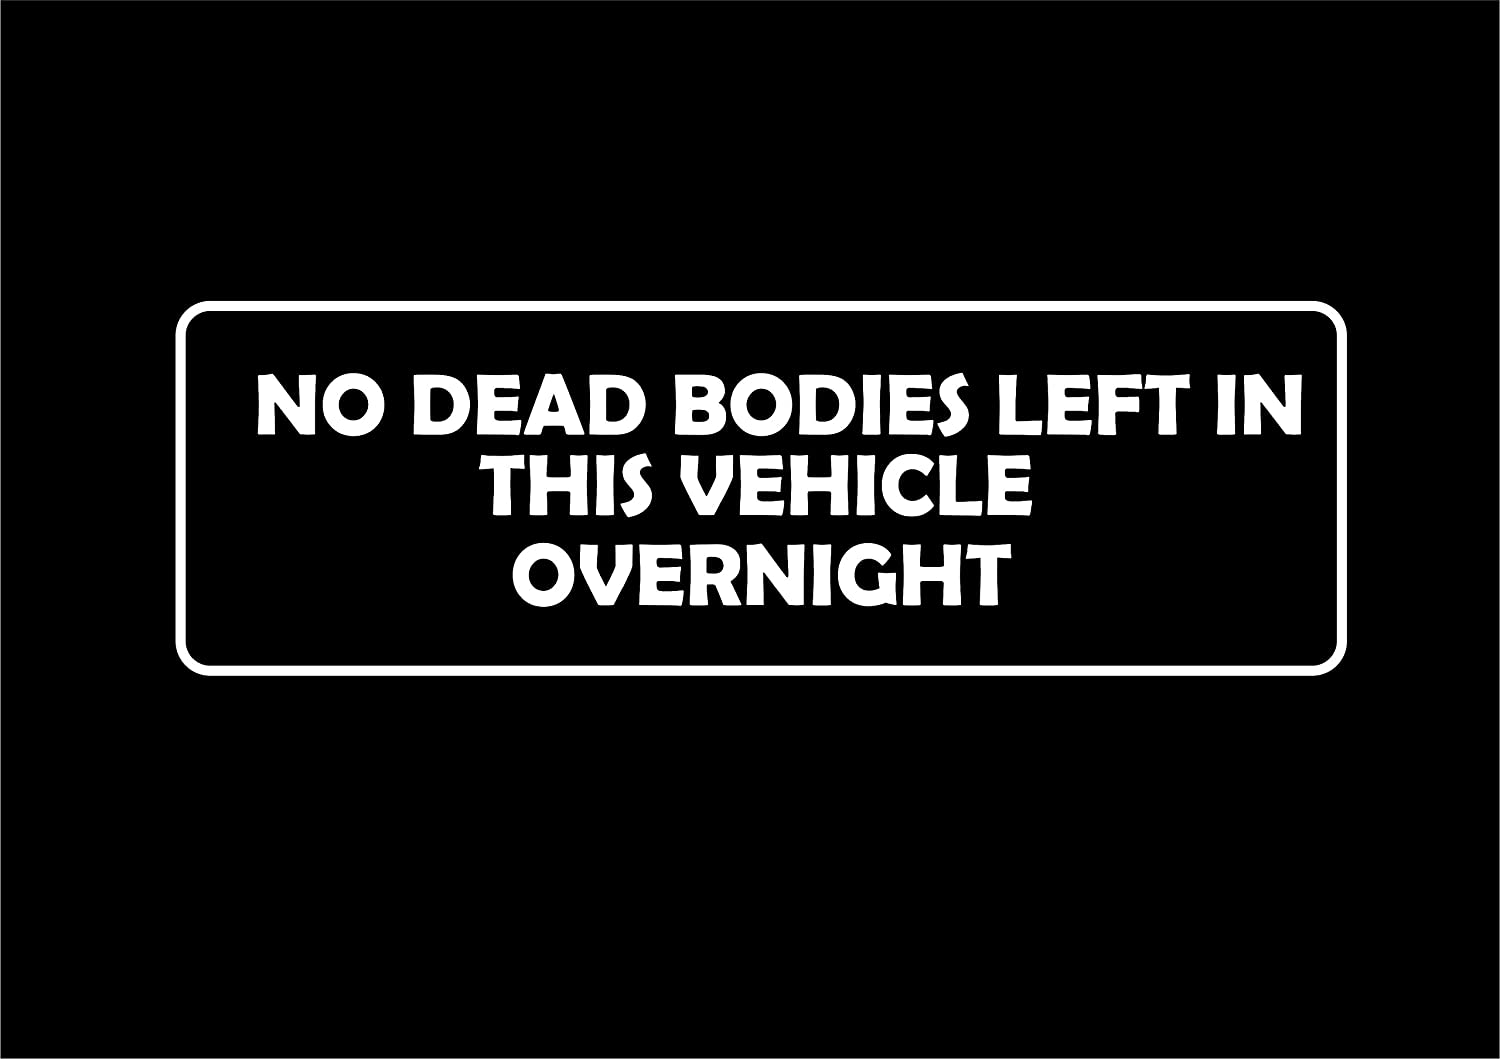 138w no dead bodies left overnight funny car sticker van window bumper vinyl decal amazon co uk car motorbike